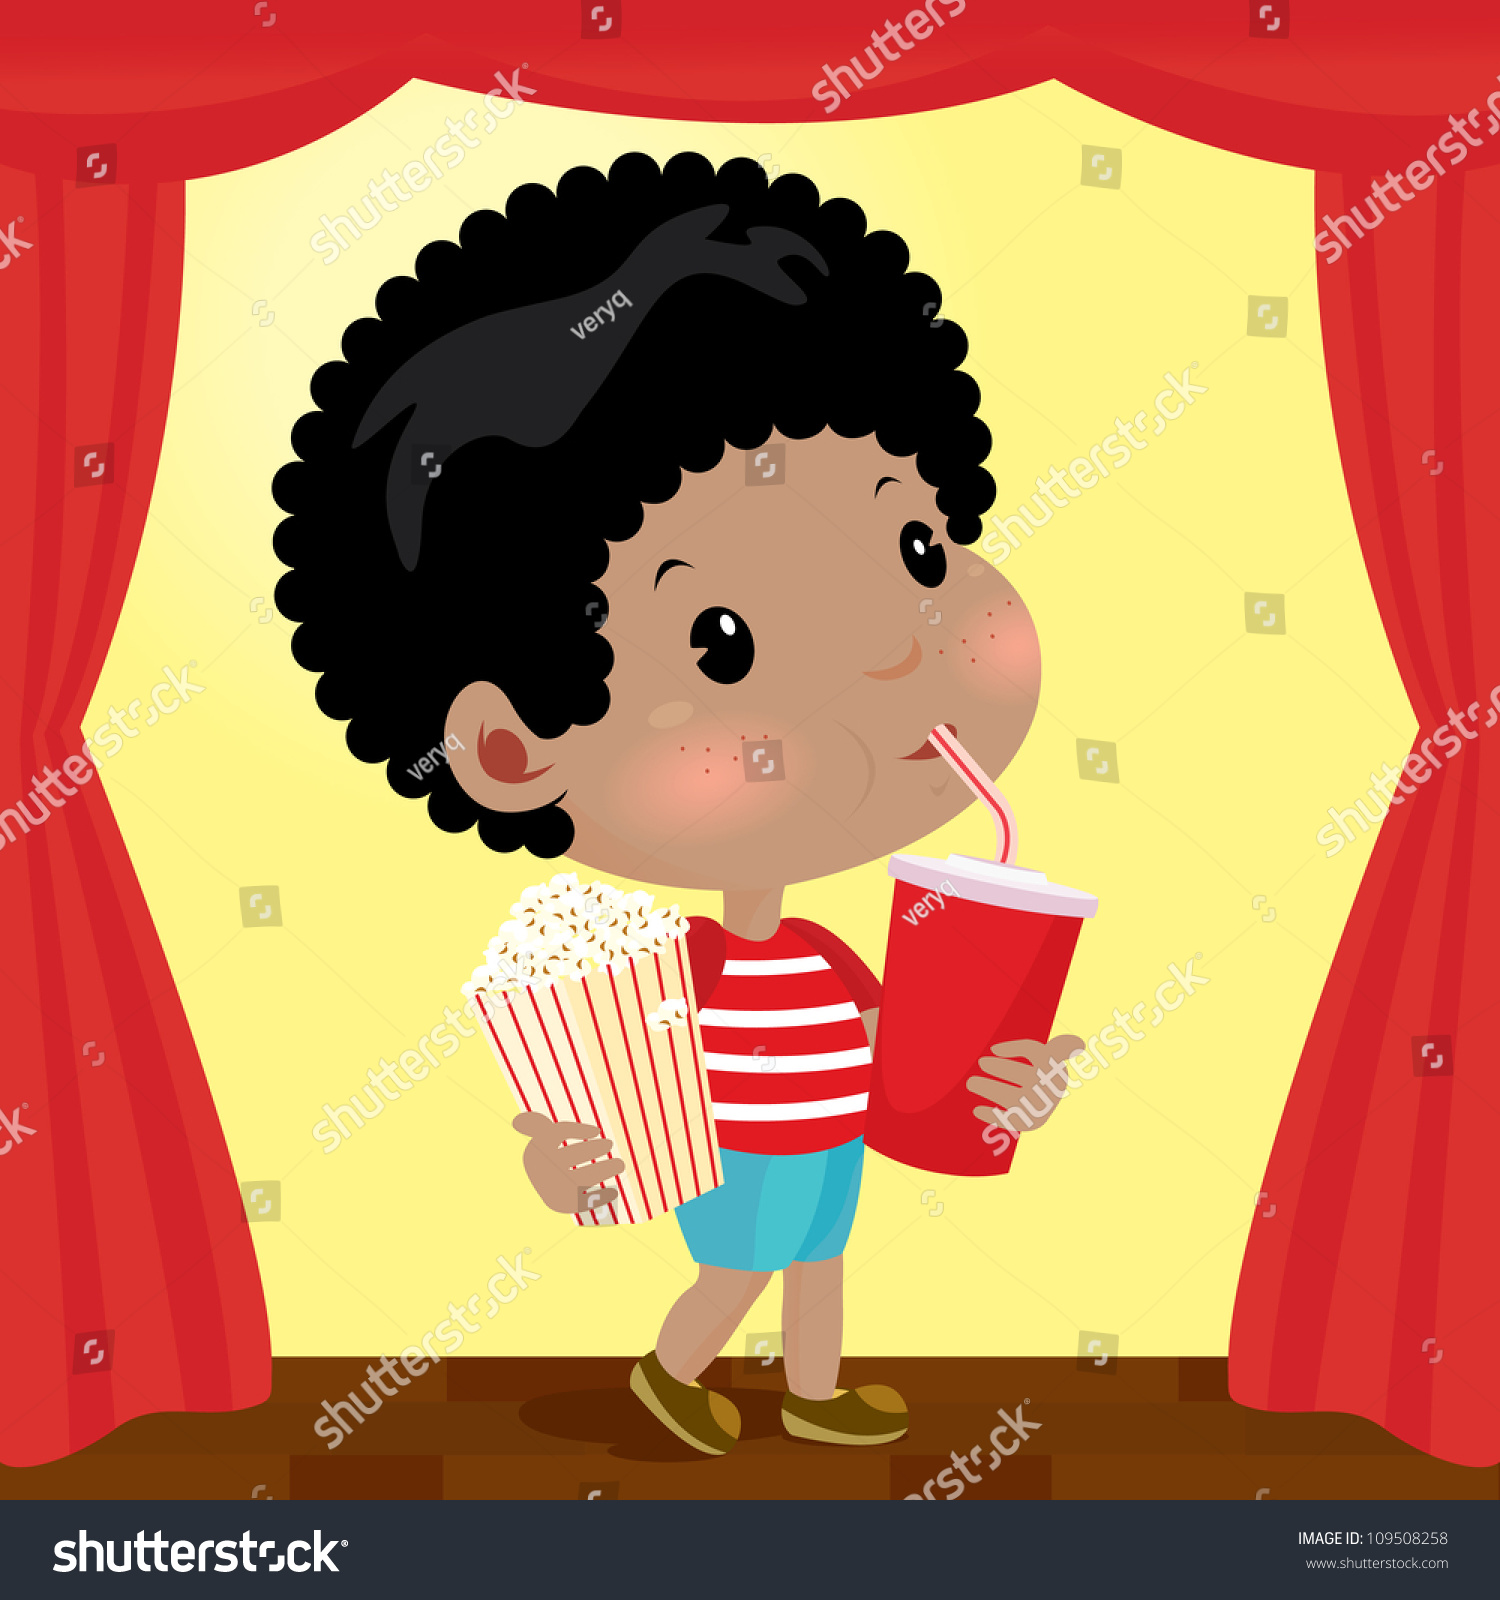 Worksheet Going To The Movies boy eat and drink going to the movies stock vector illustration preview save a lightbox